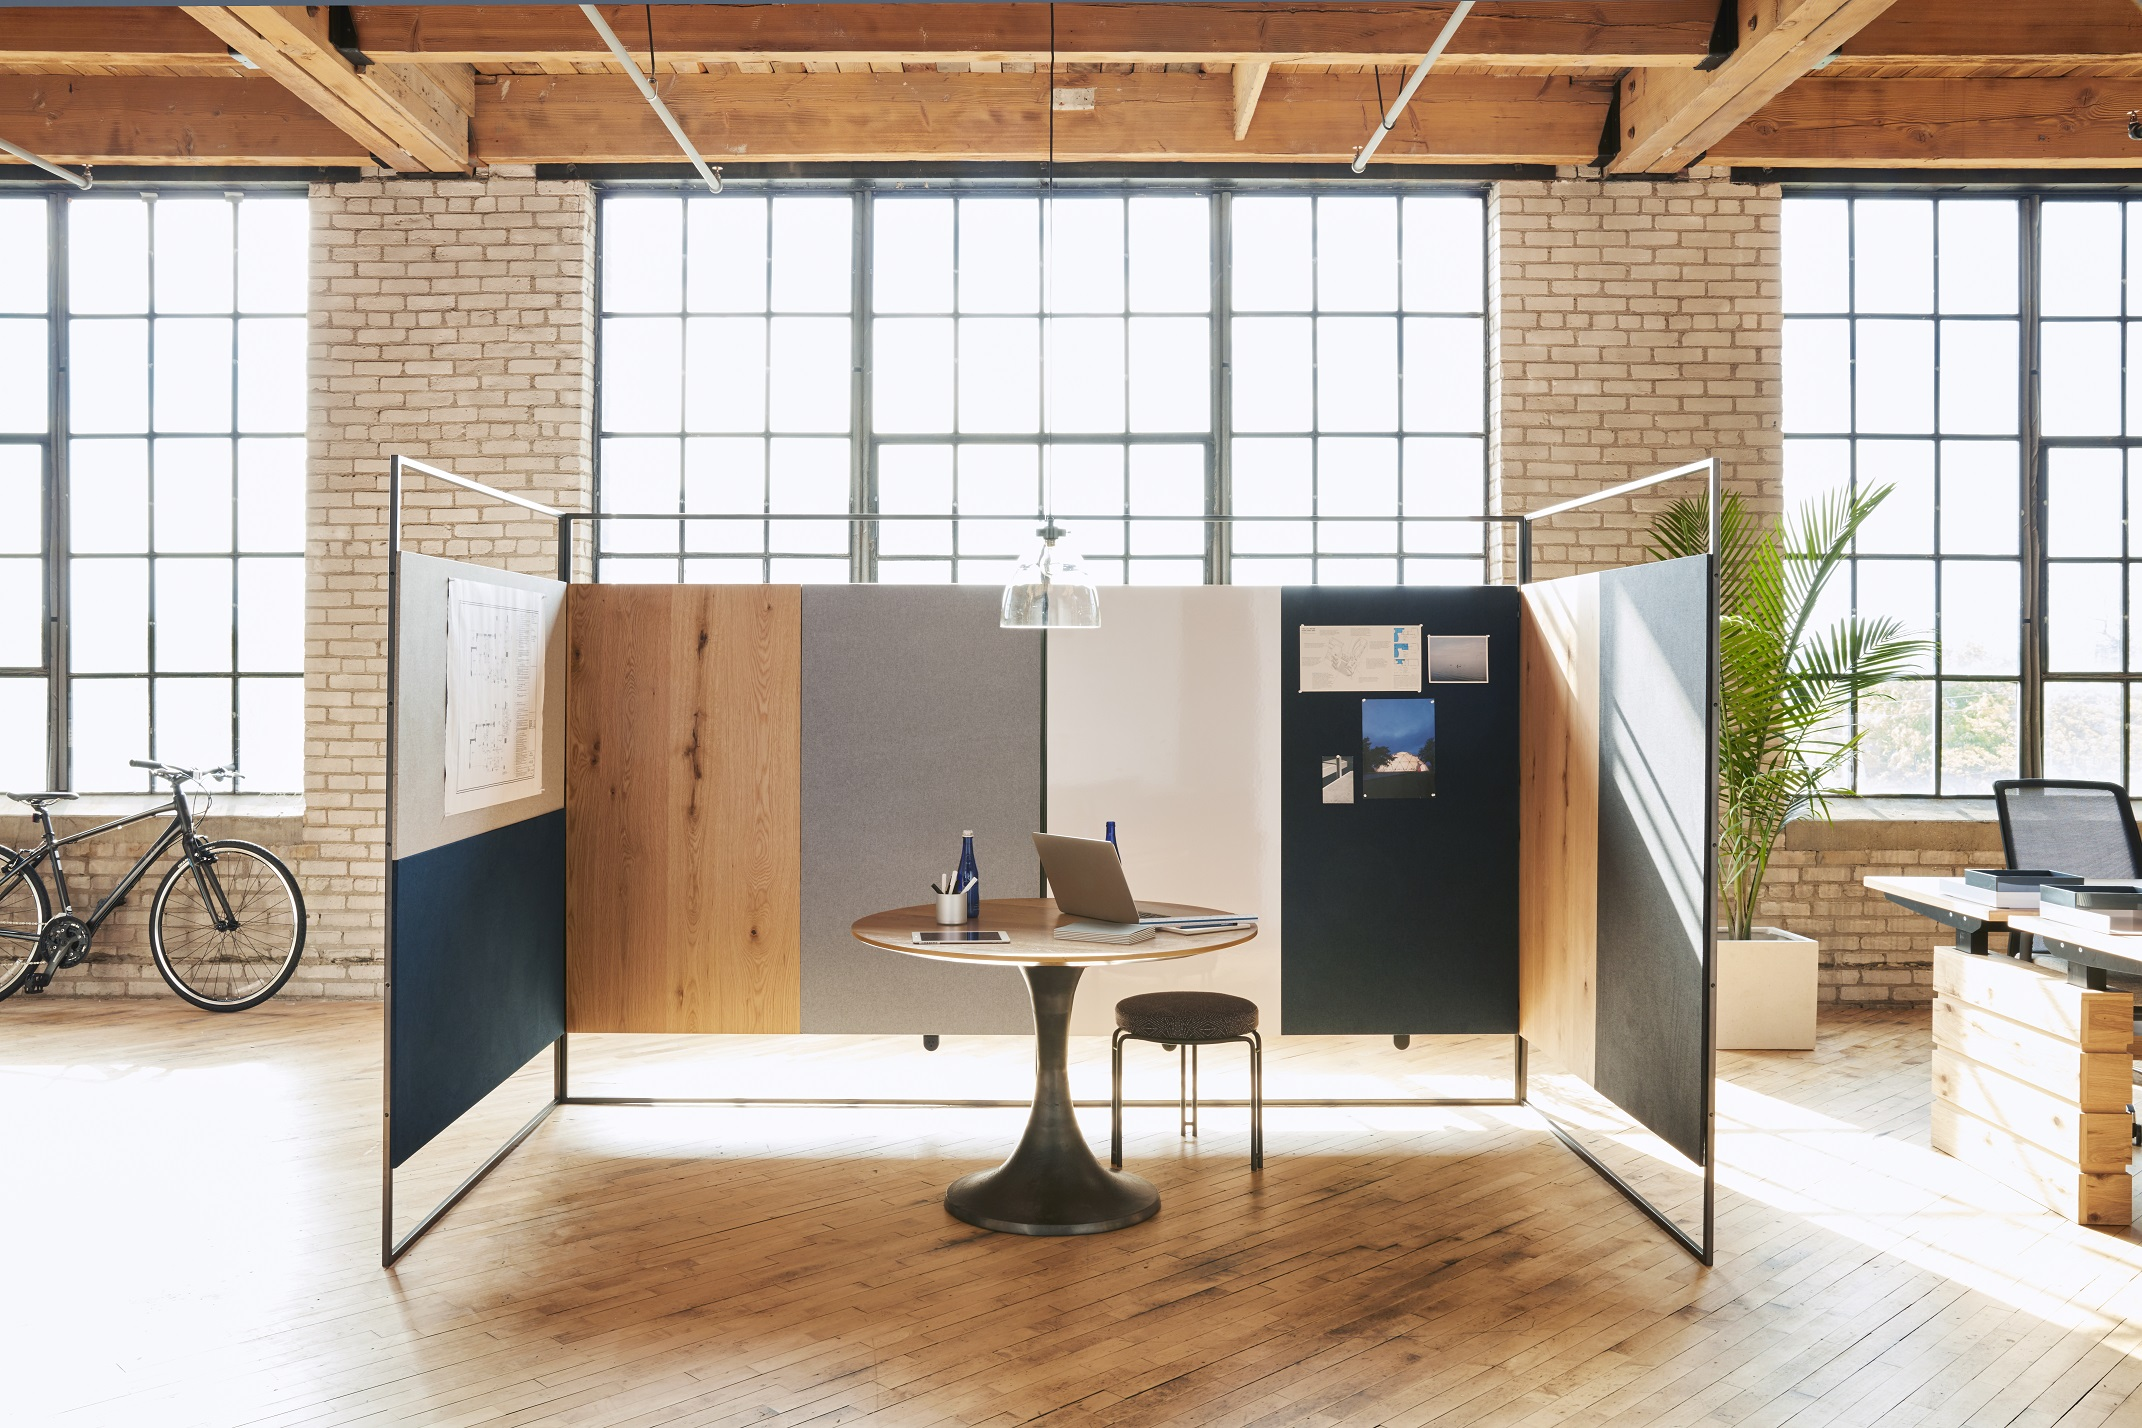 West Elm Workspace Continues To Push The Industry At